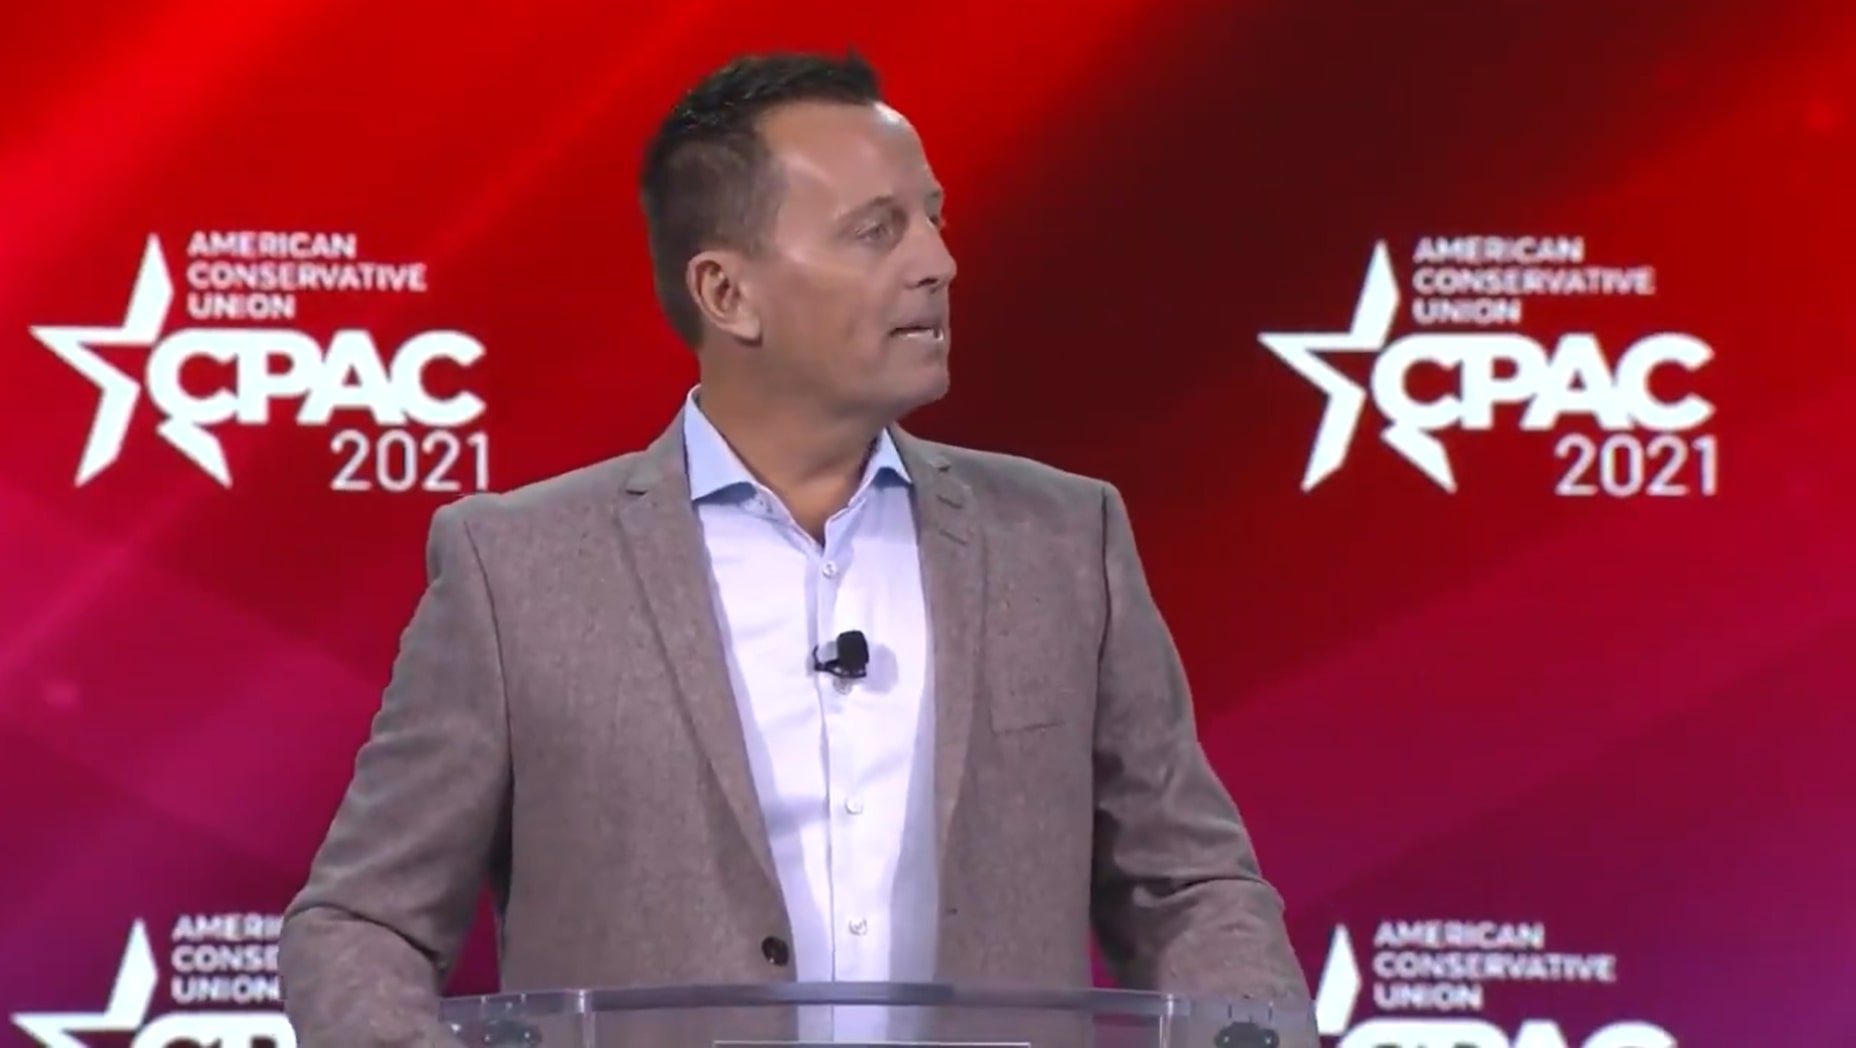 """Run, Ric, Run!"" – Richard Grenell Teases California Governor Run"